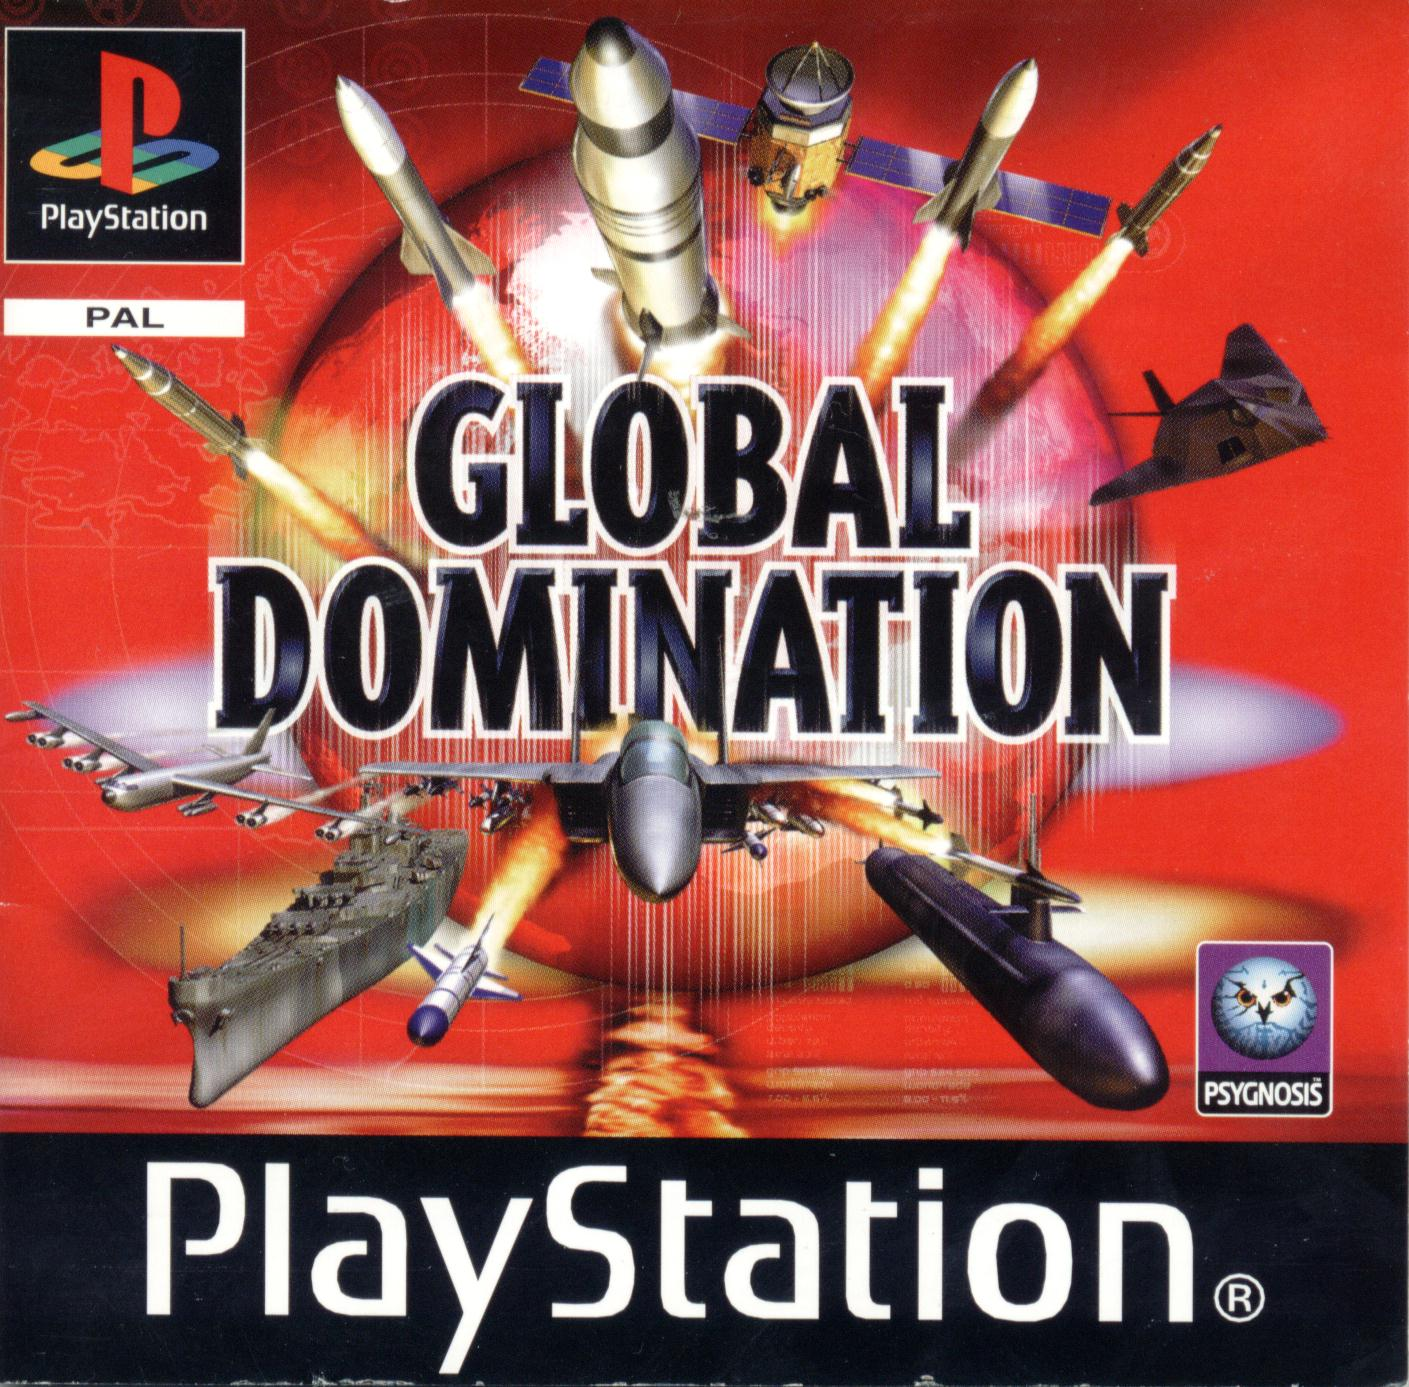 Download Game Ps1 Global Domination ISO Psx Free - Airlandzz.com